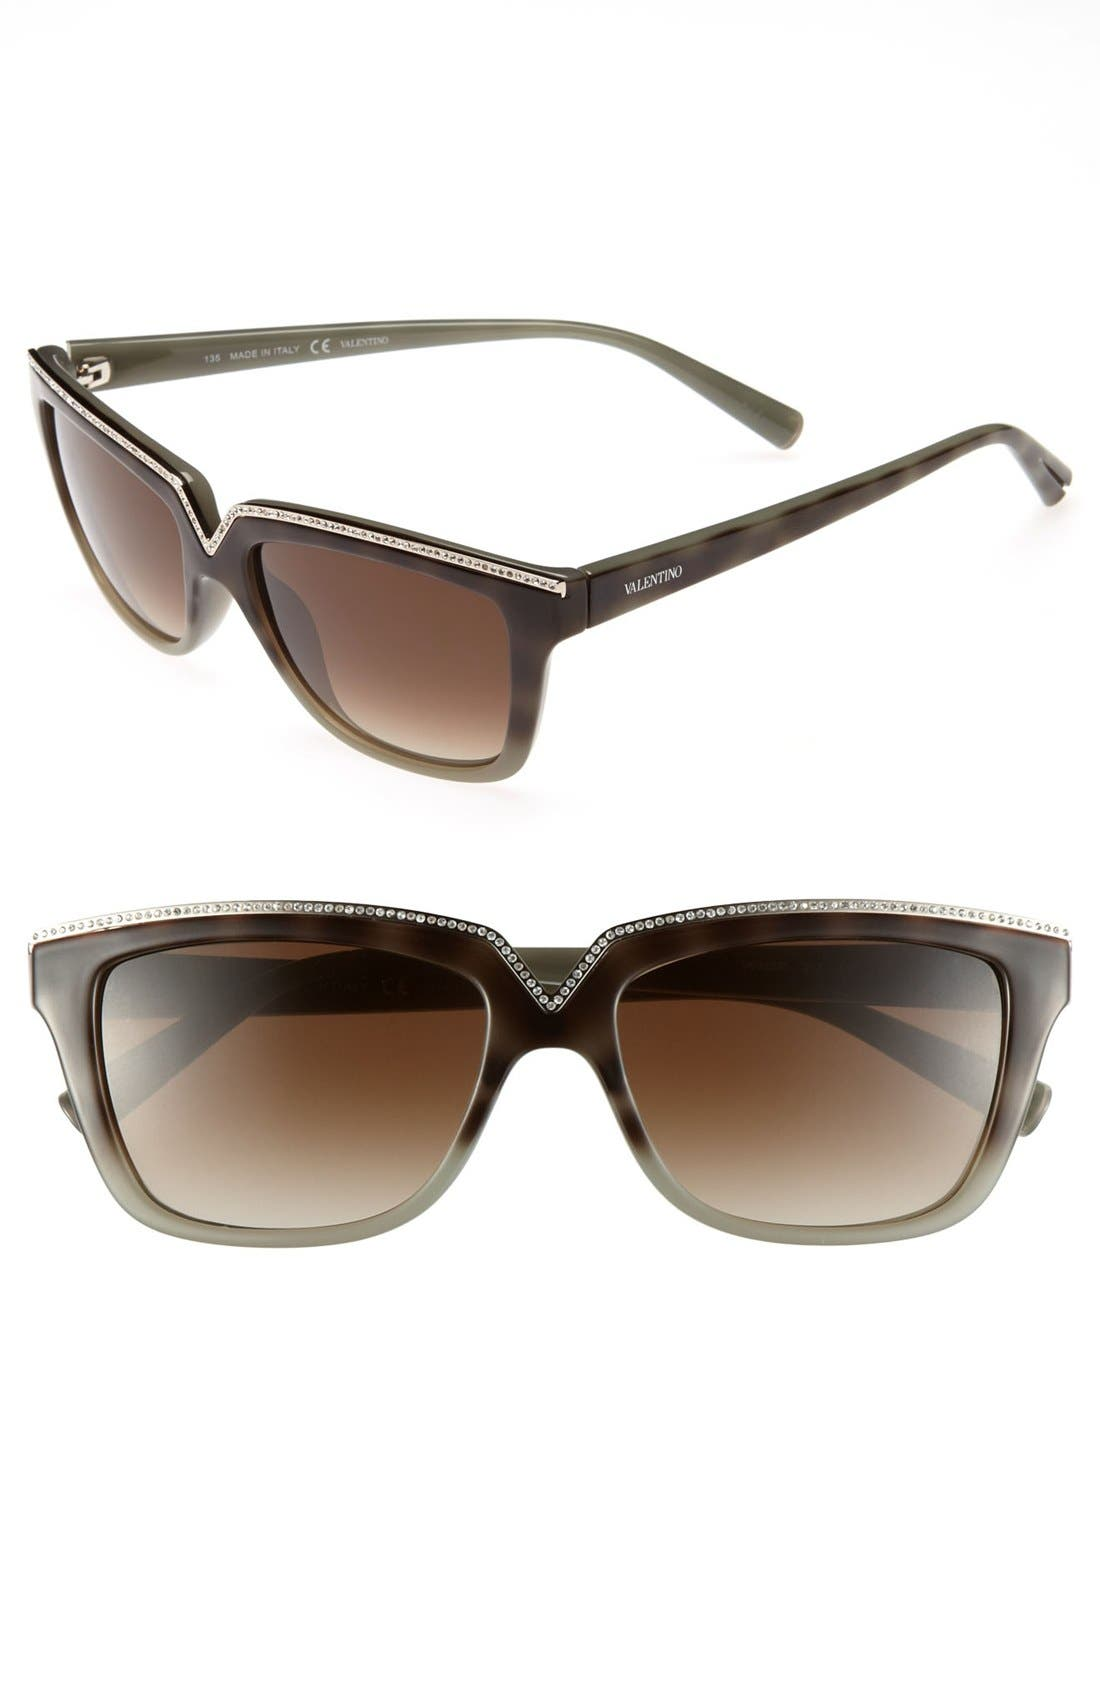 Alternate Image 1 Selected - Valentino 53mm Retro Sunglasses